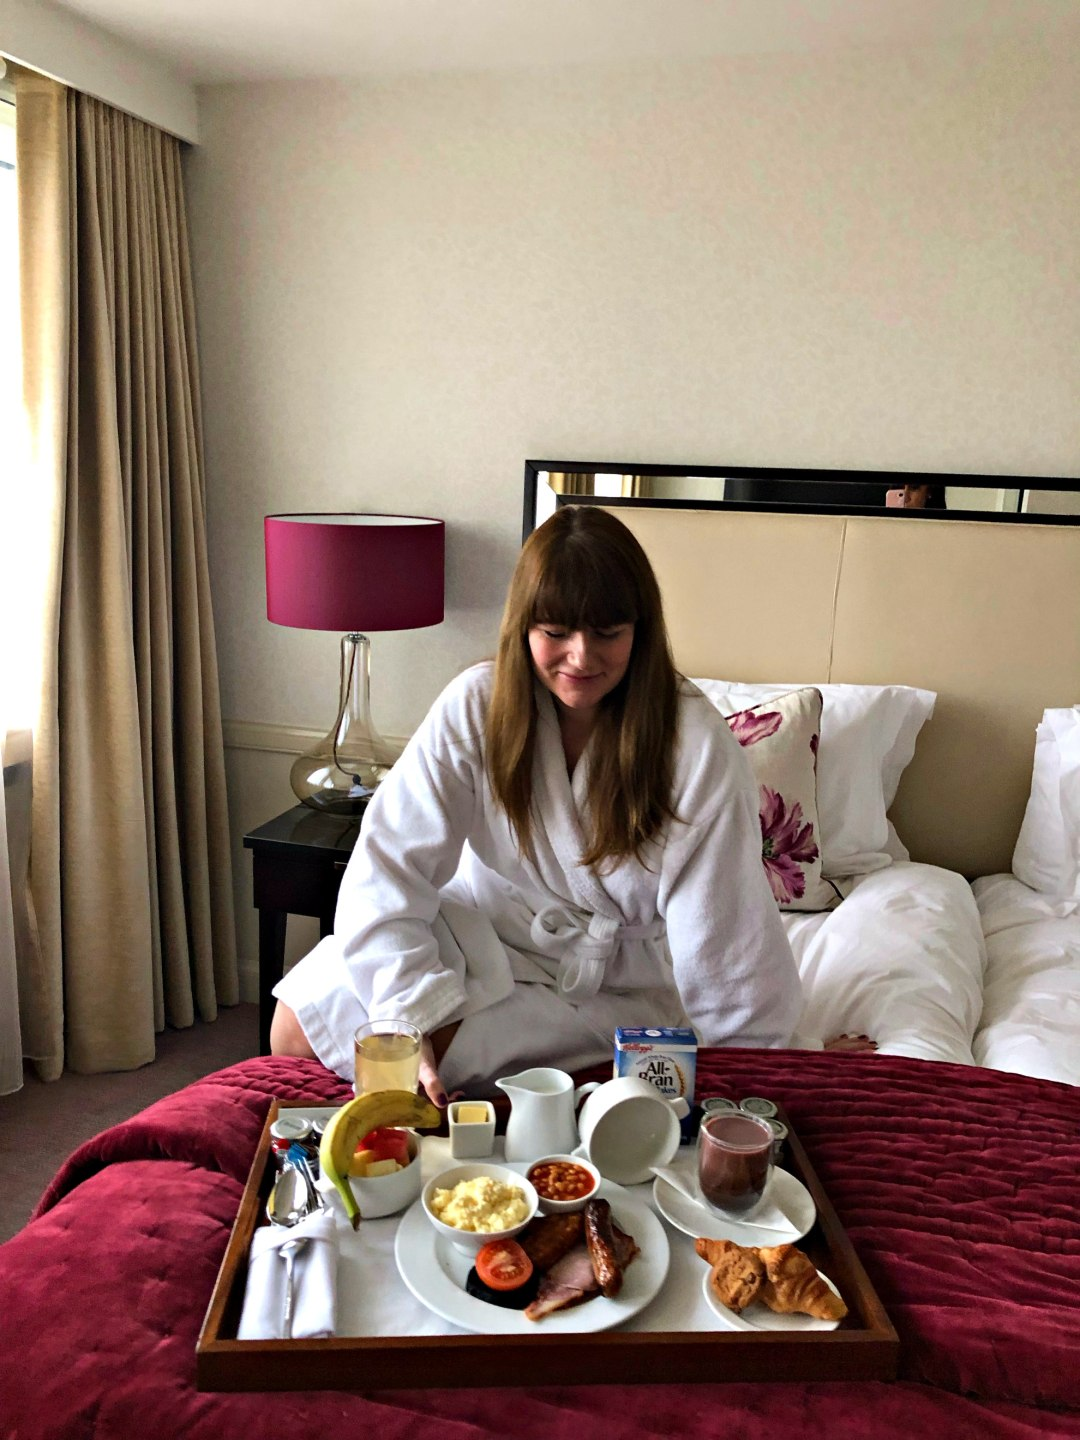 Picture of me on the bed with my breakfast on a large tray!